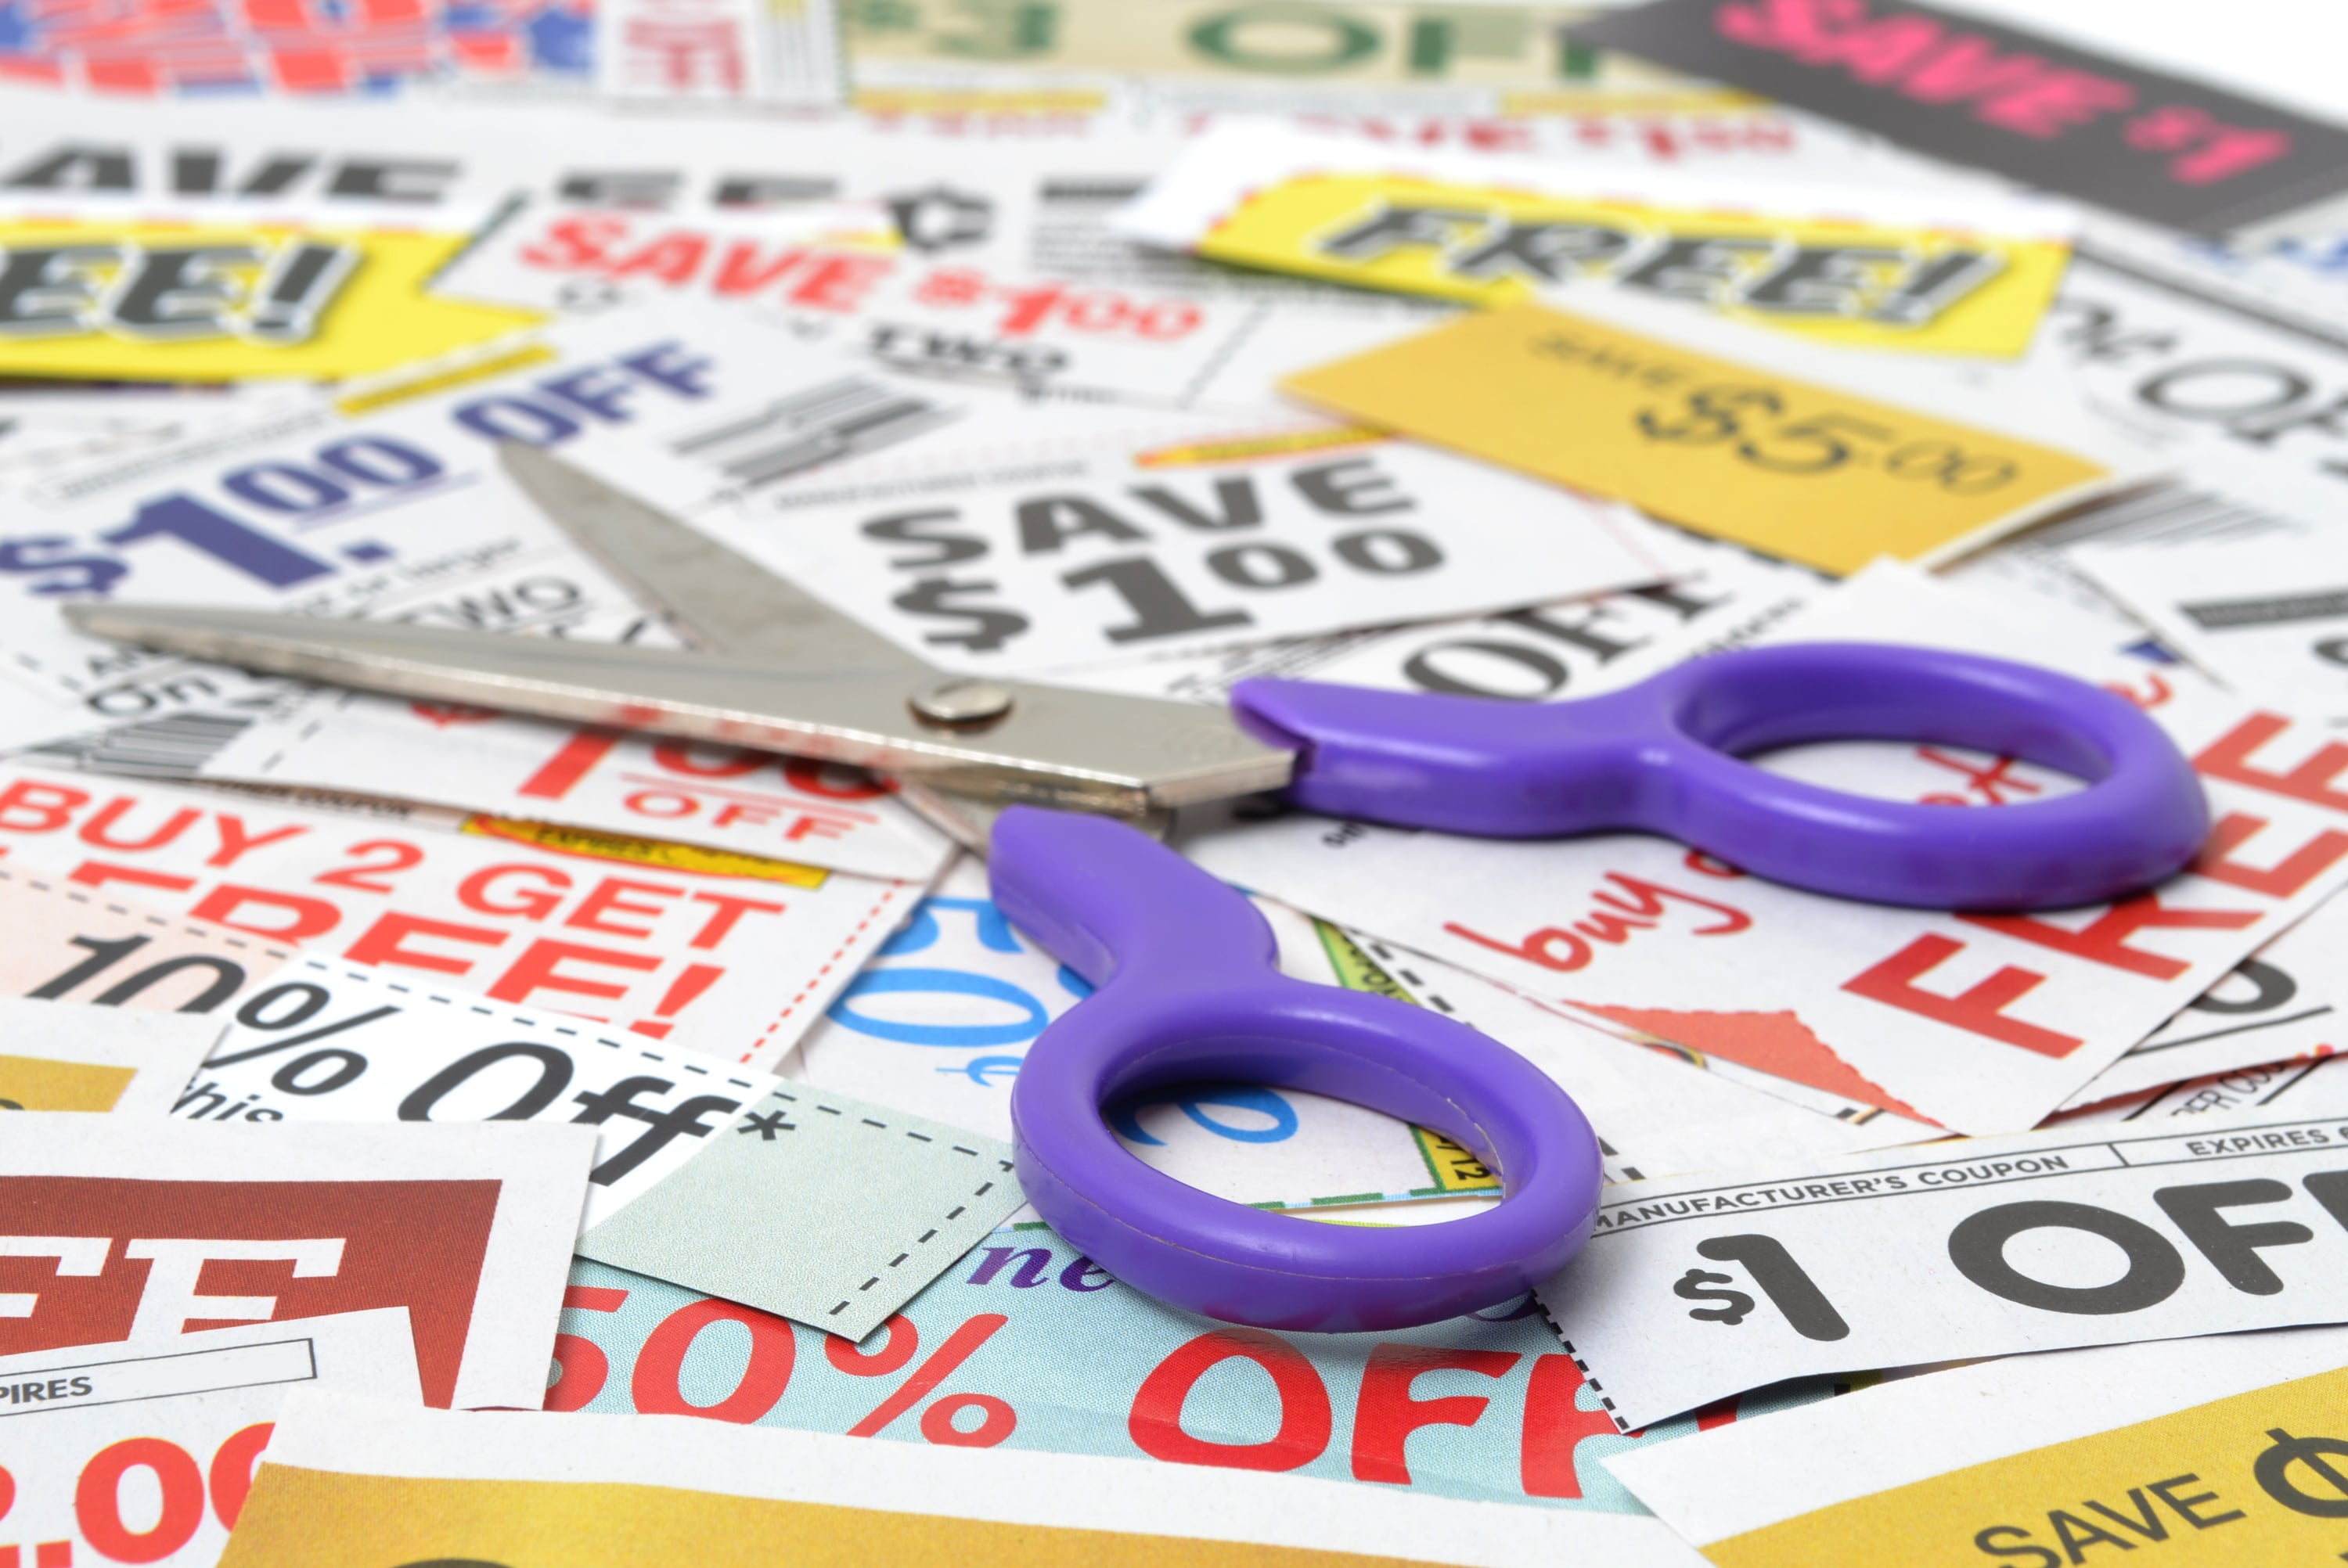 6 Reasons Why I Stopped Extreme Couponing